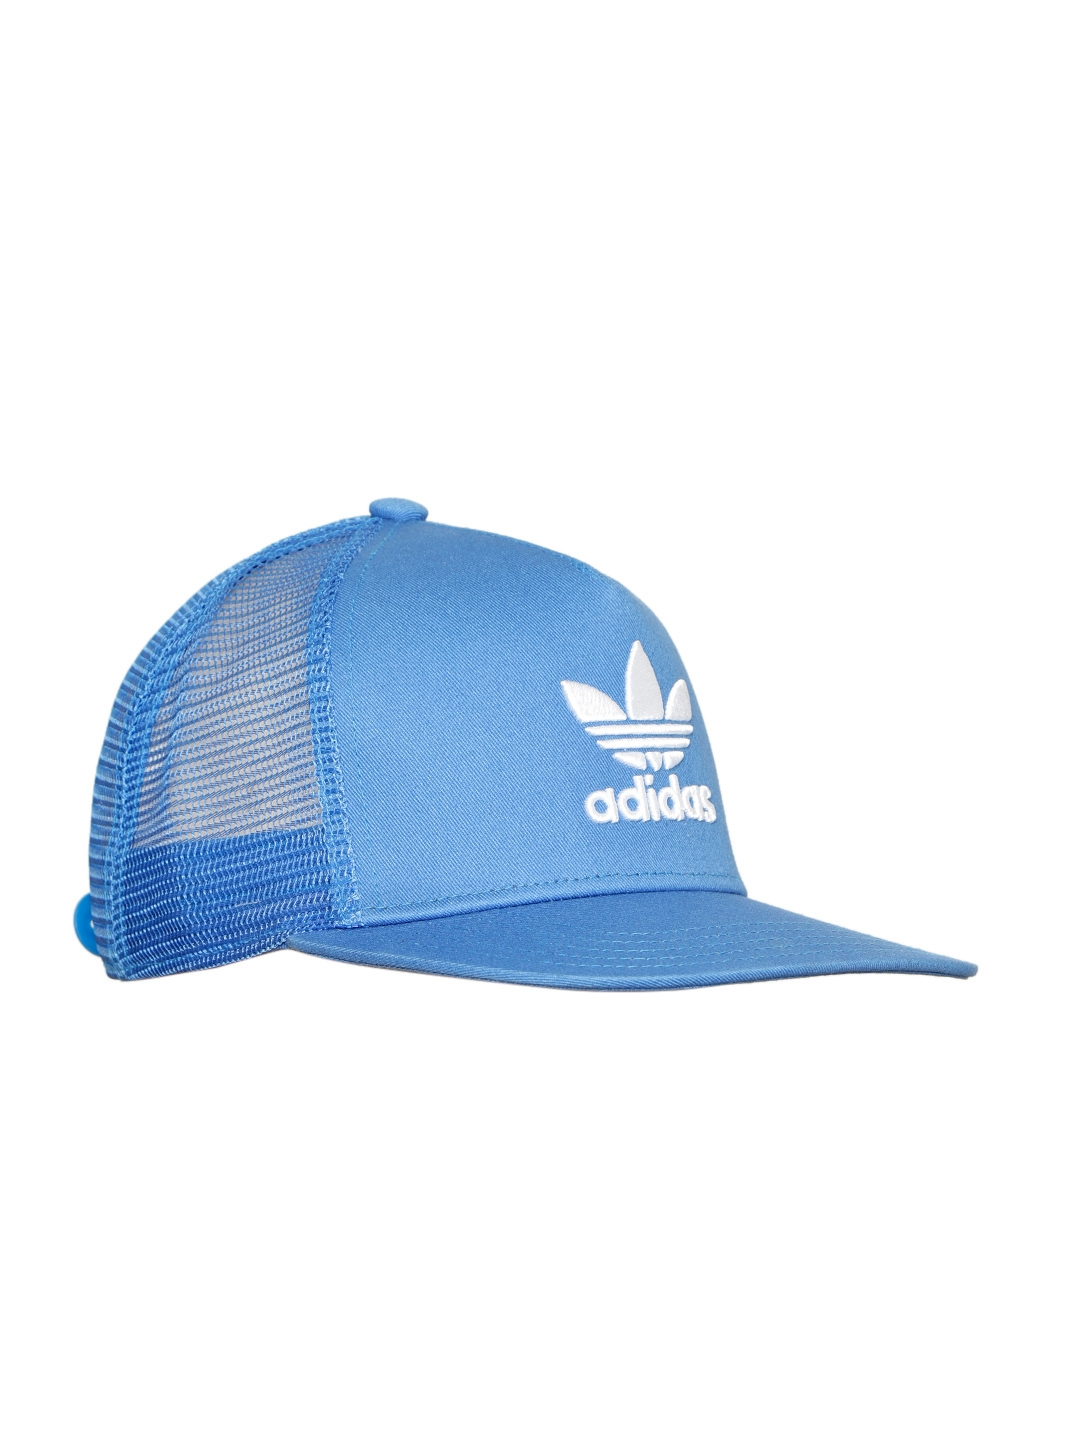 a376fbced65 ADIDAS Originals Unisex Blue Trefoil Trucker Embroidered Snapback Cap